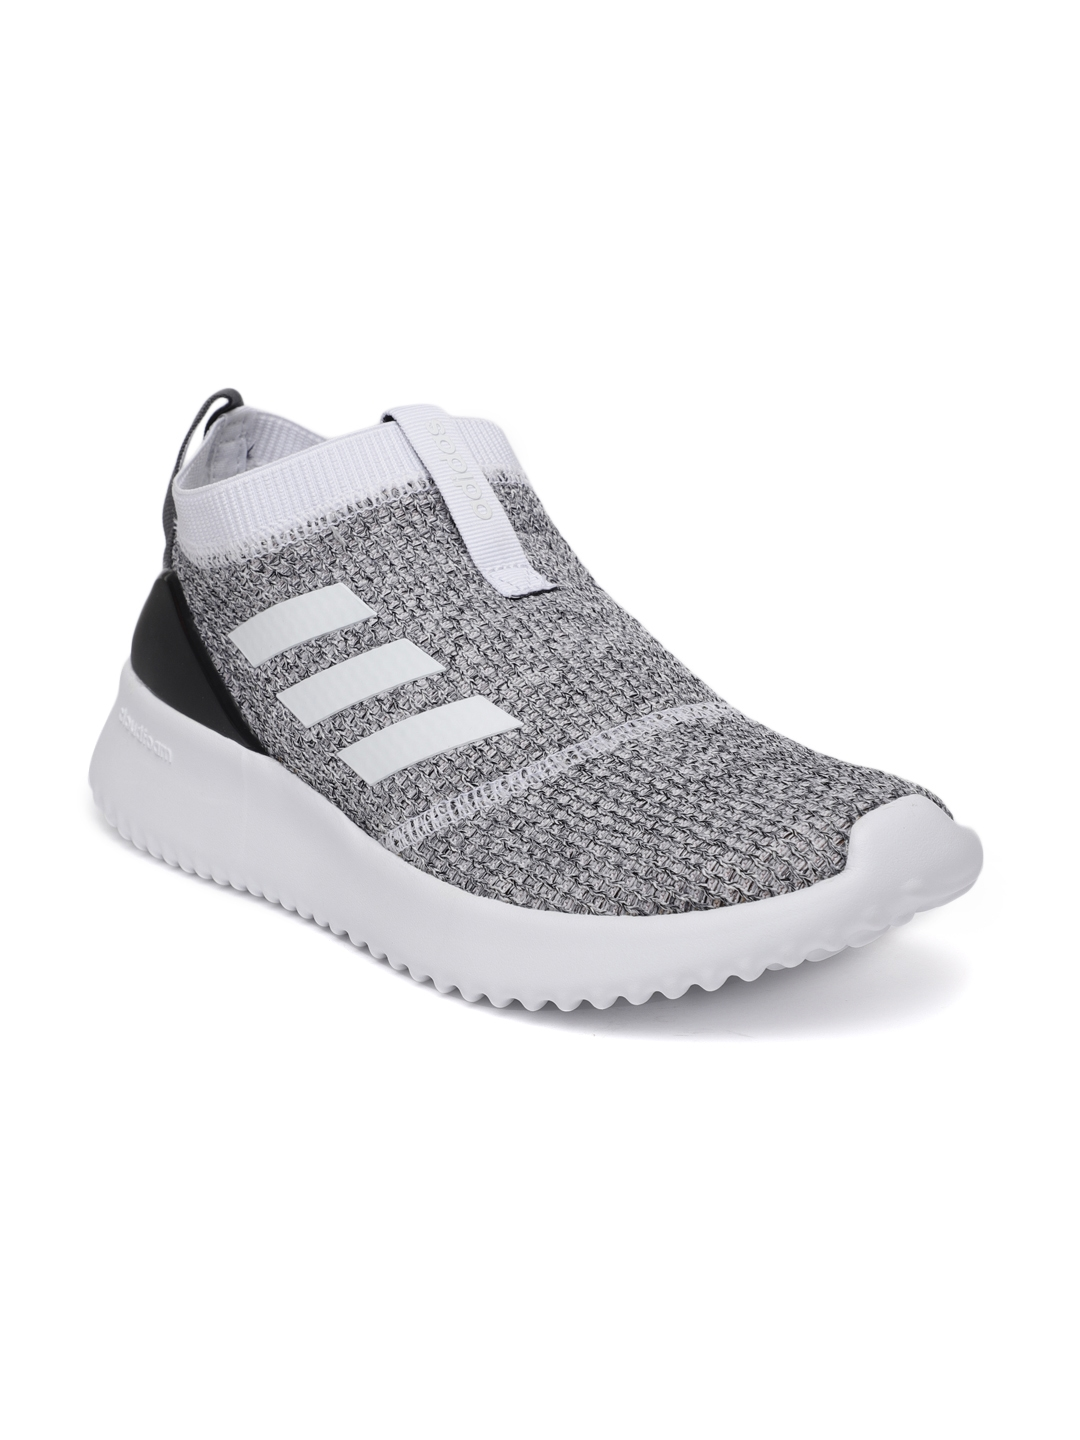 the best attitude 75a7a e4ffb ADIDAS Women White   Black ULTIMAFUSION Slip-on Running Shoes